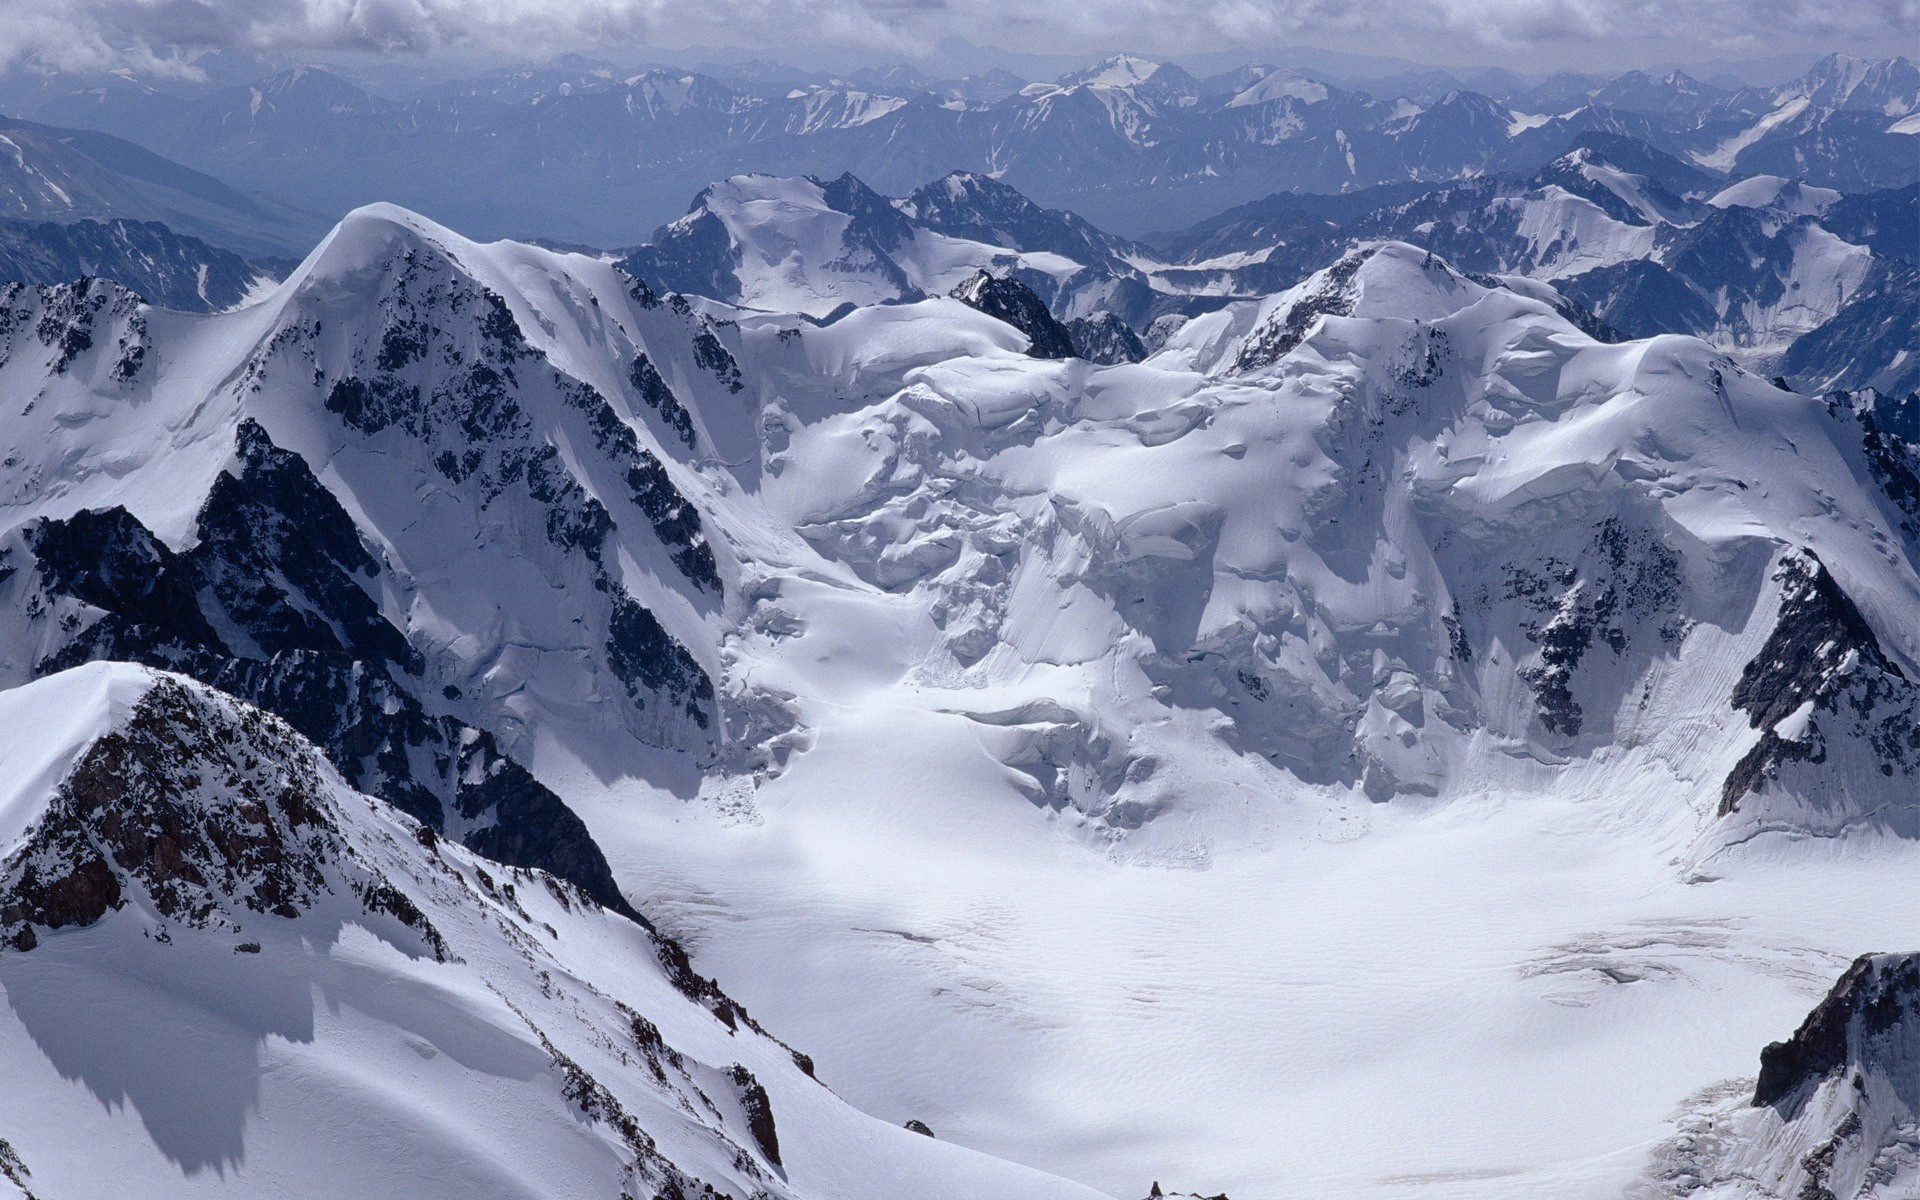 Snow Mountain Wallpapers High Definition